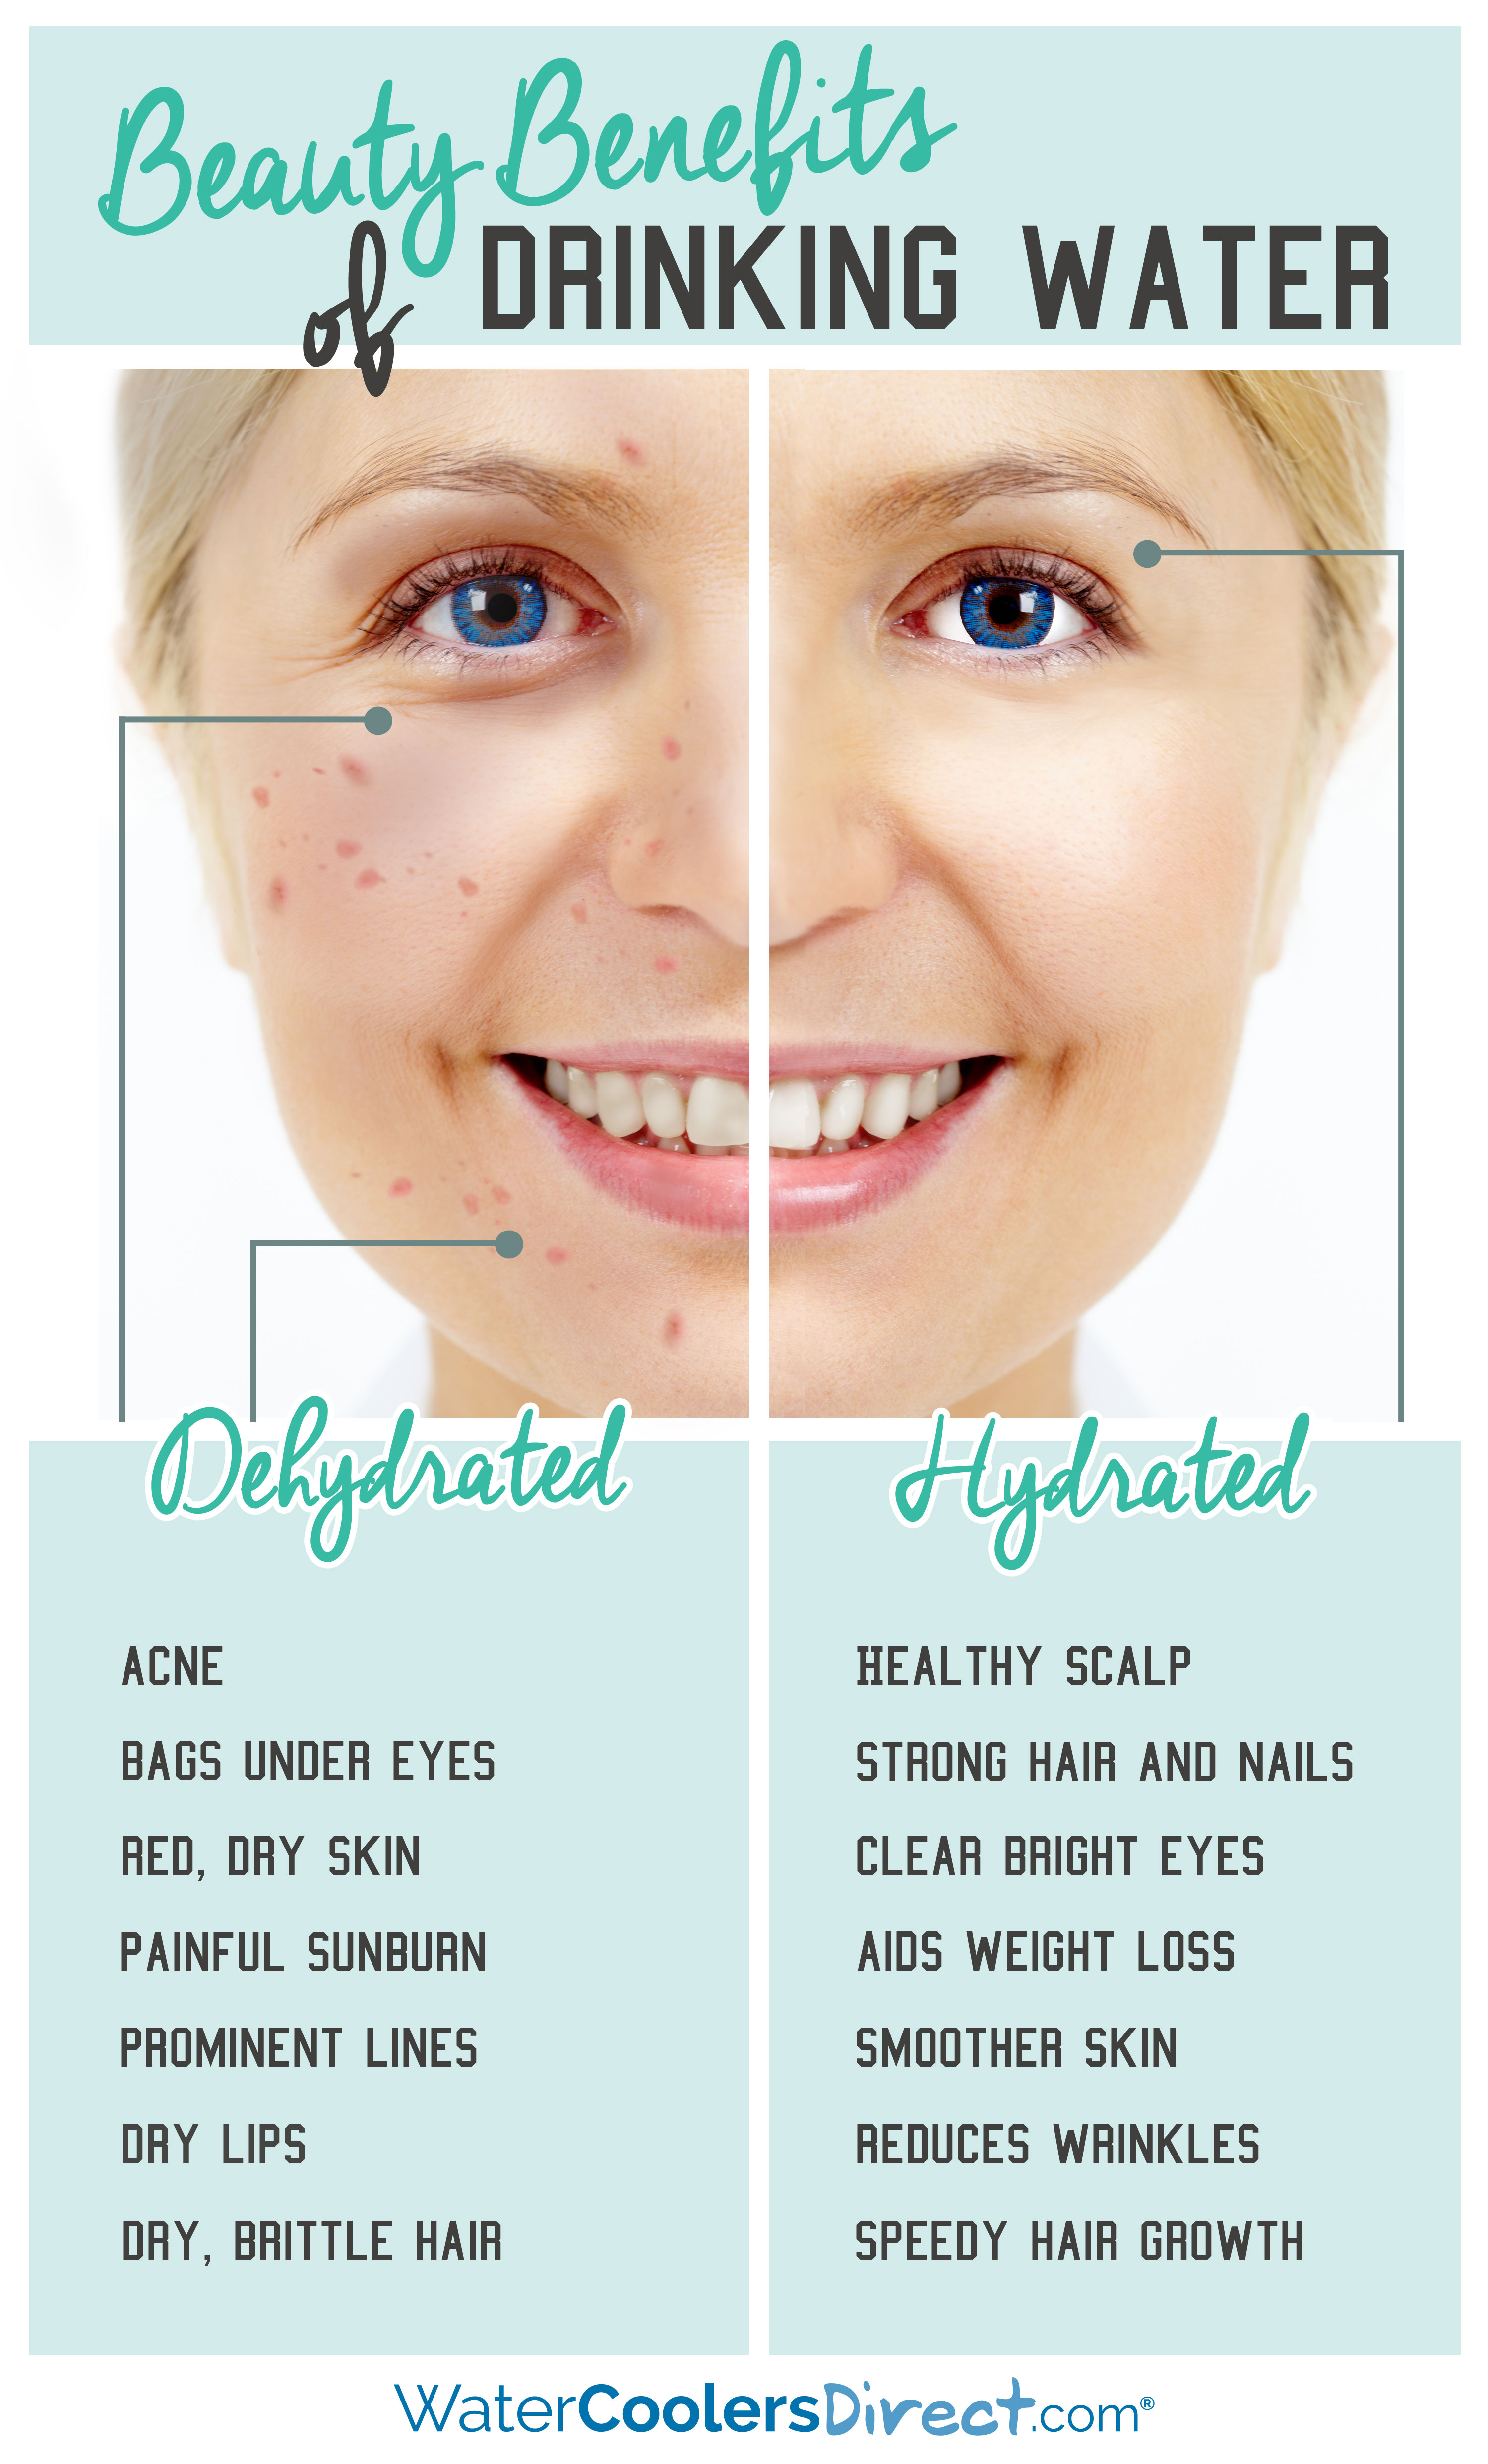 Does Drinking Water Help Skin